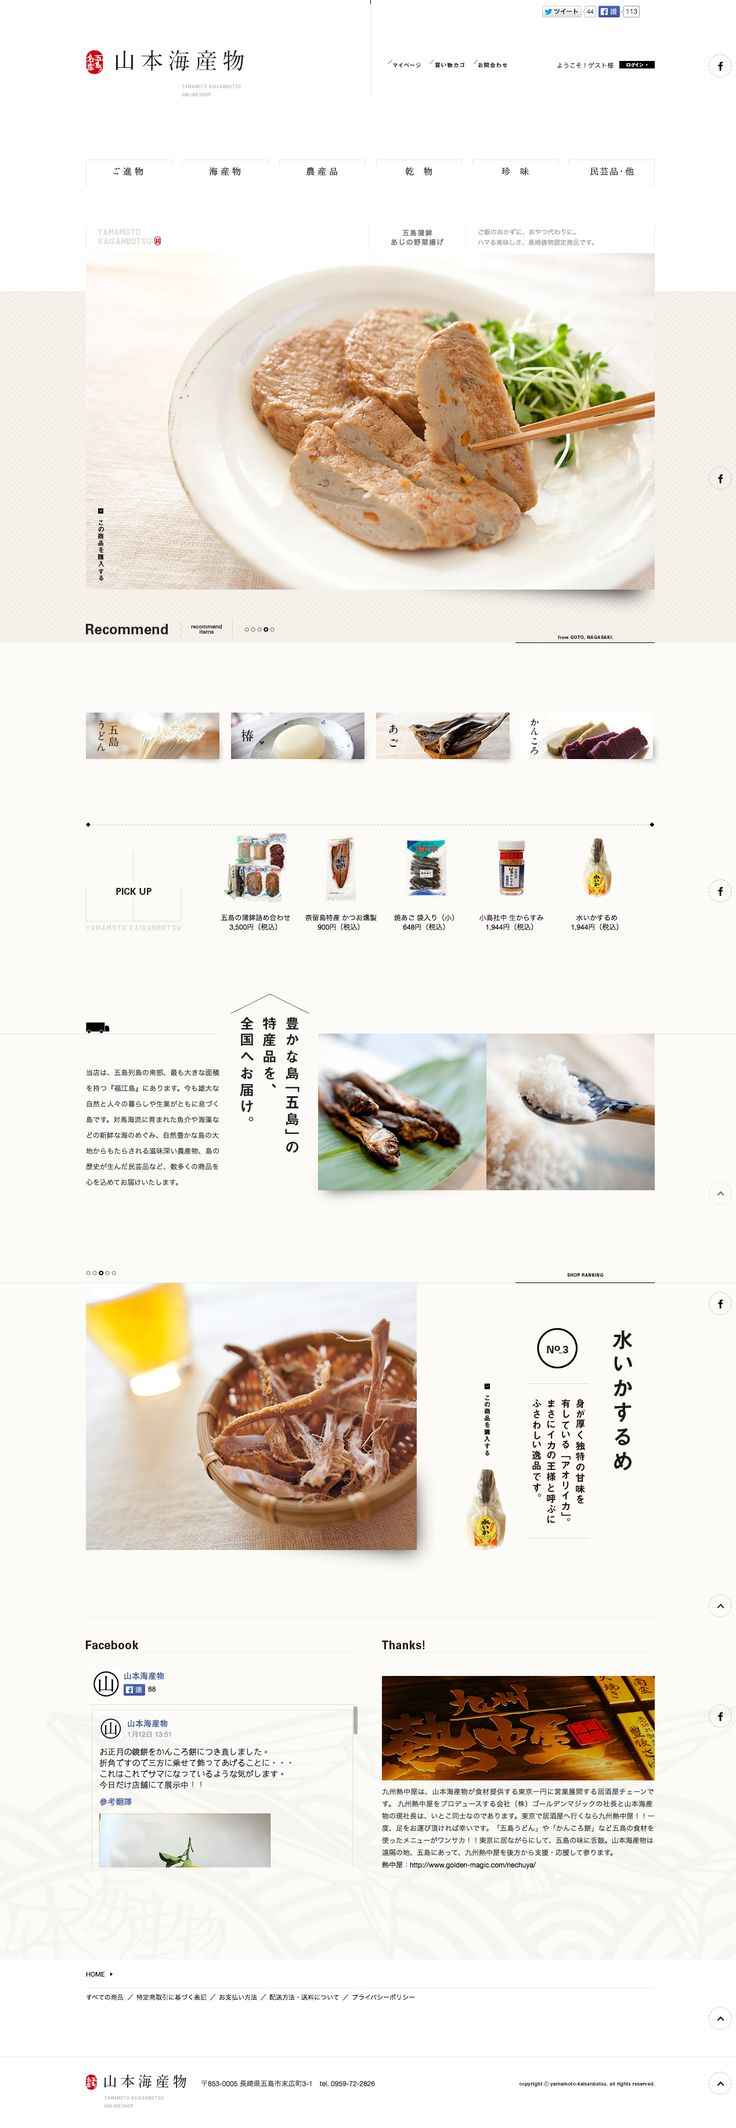 http://shop.yamamoto-kaisanbutsu.jp // Hi Friends, look what I just found on #web #design! Make sure to follow us @moirestudiosjkt to see more pins like this | Moire Studios is a thriving website and graphic design studio based in Jakarta, Indonesia.